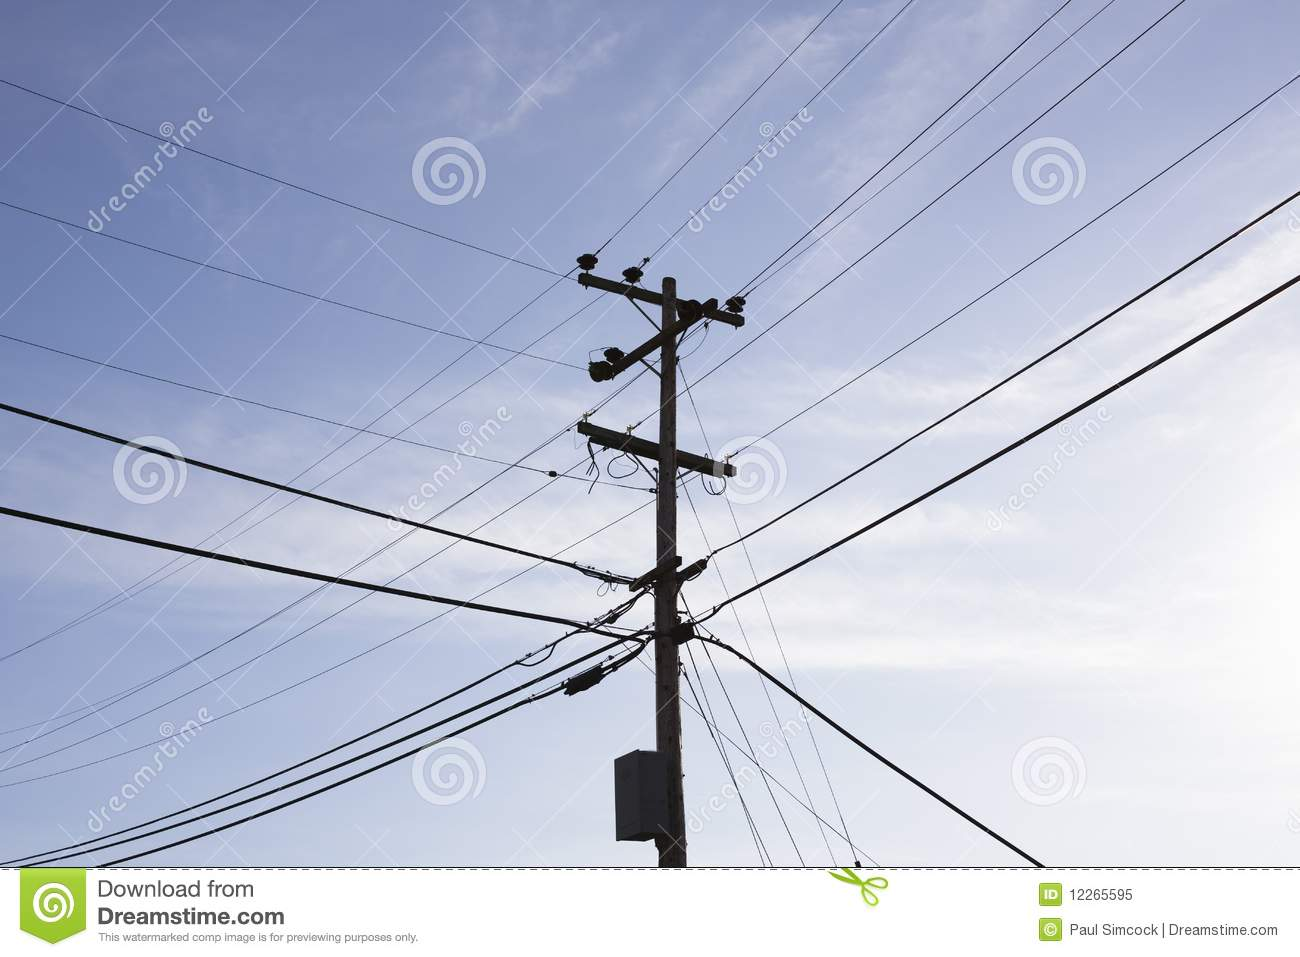 Power Pole And Wires Royalty Free Stock Photo   Image  12265595